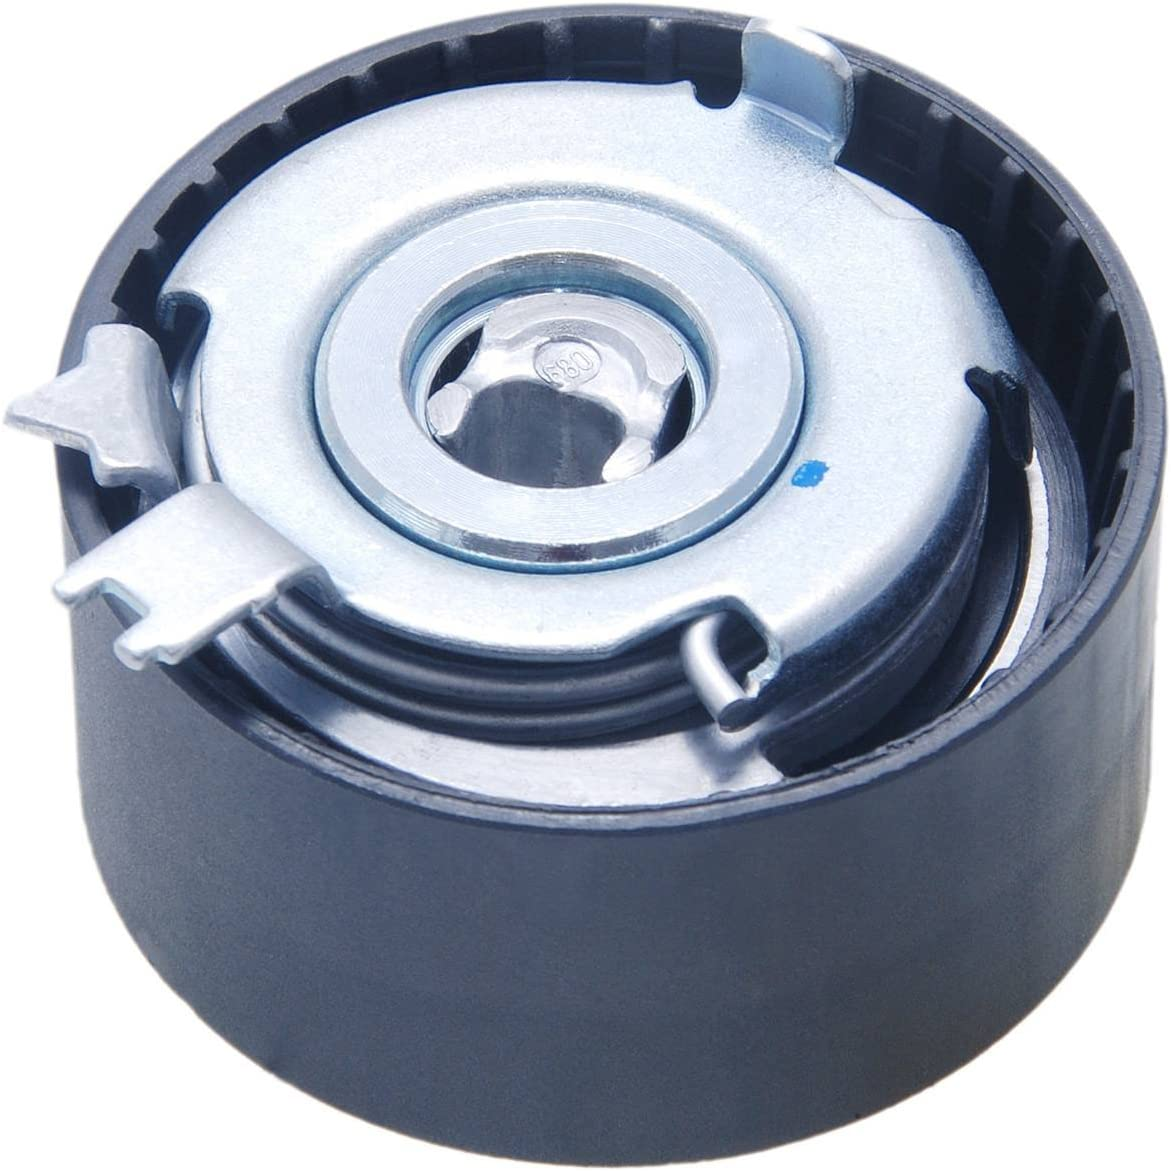 16806-00Qa6 1680600Qa6 - Pulley Classic Nissan For Super sale period limited Idler